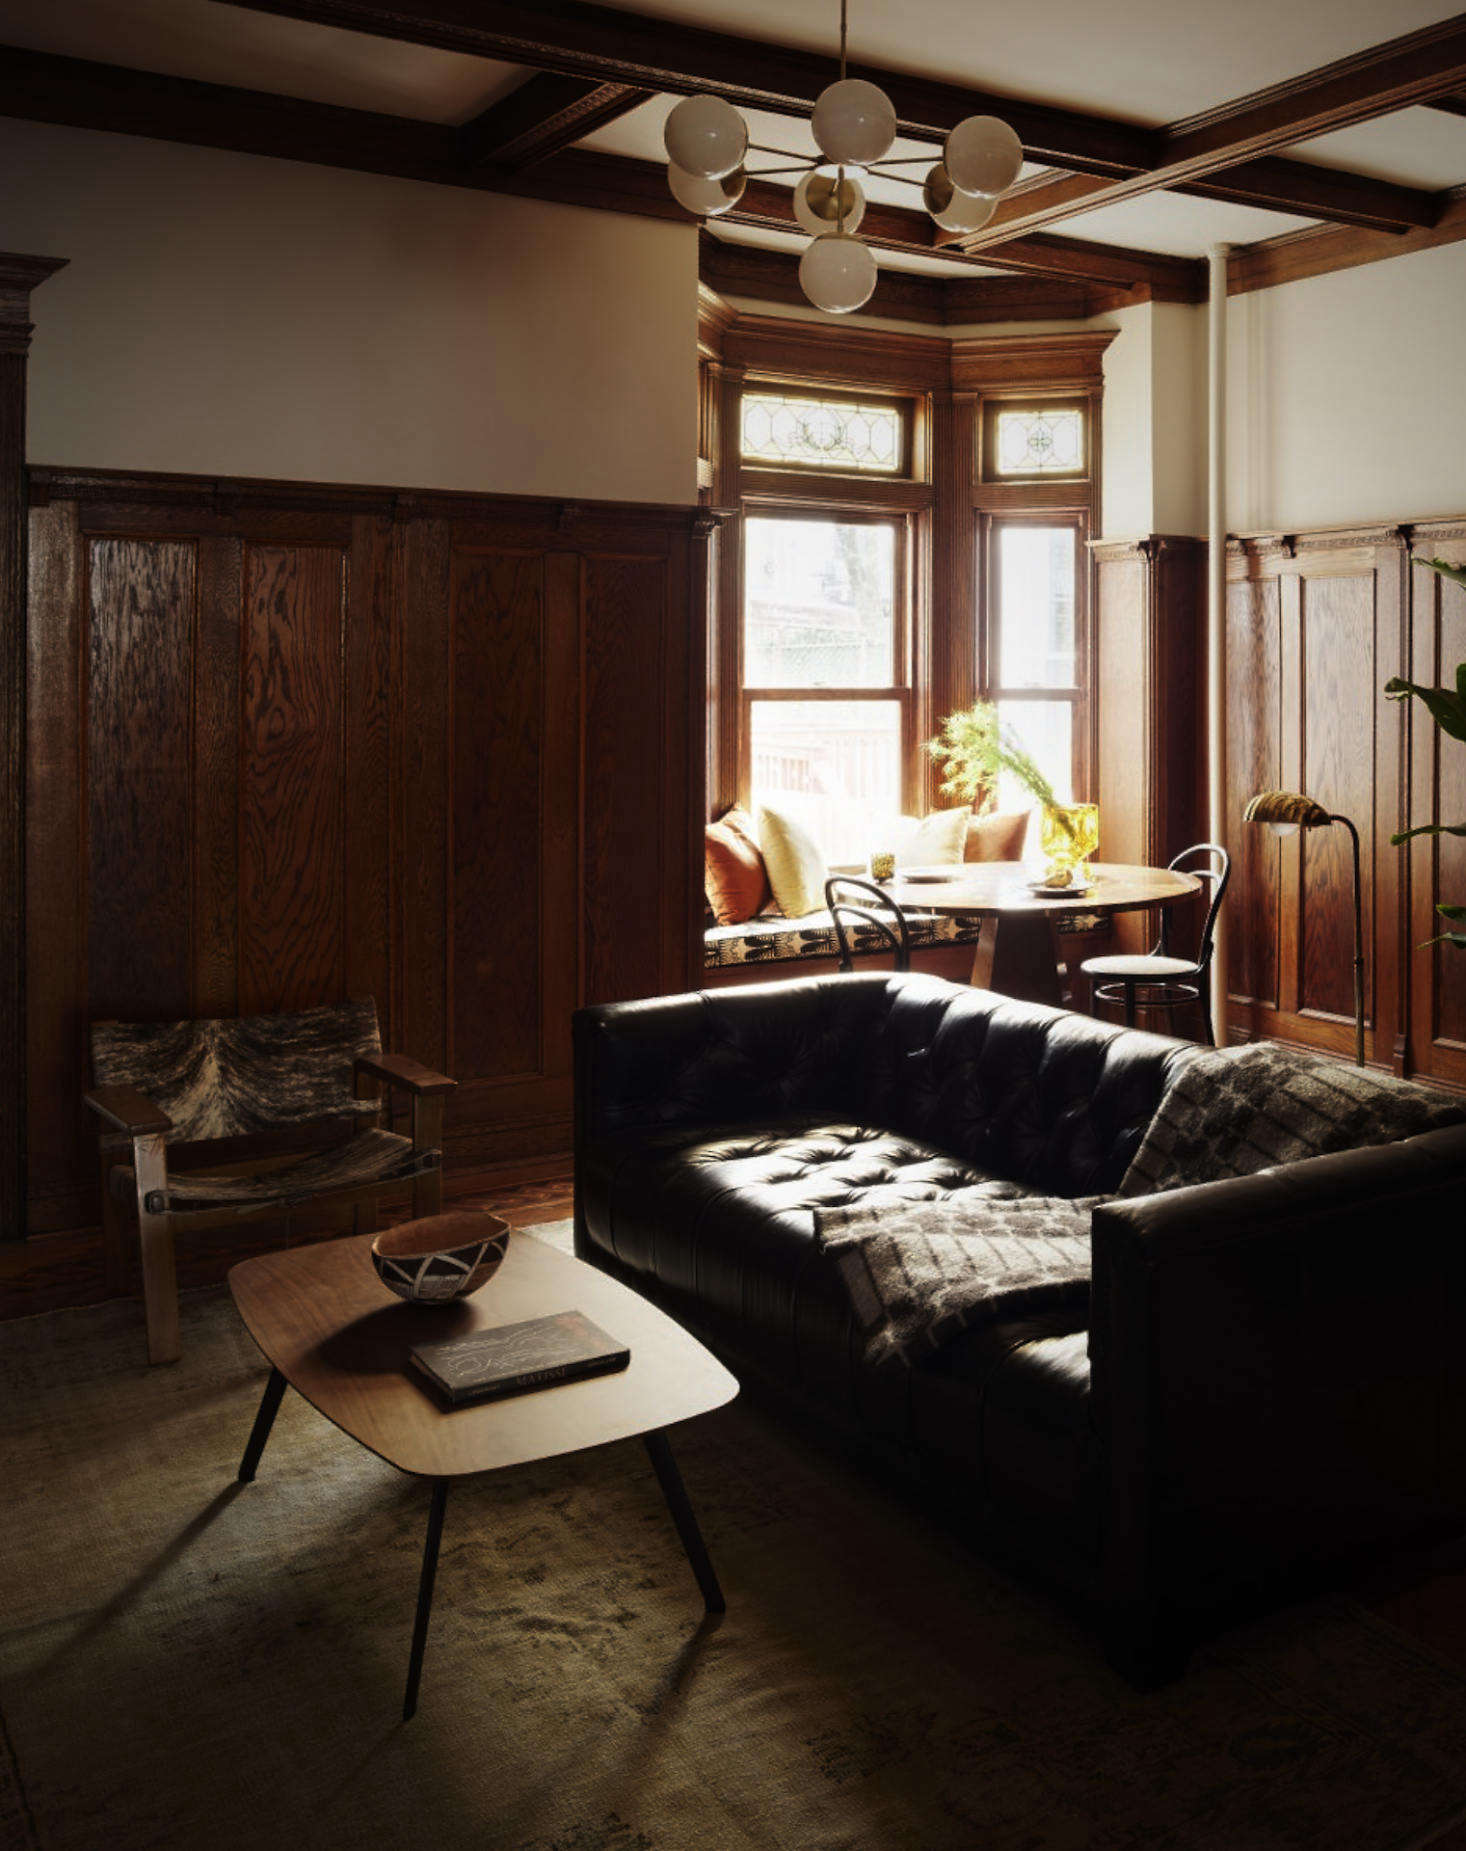 In the living room, Spain reserved the house's warm Arts and Crafts-style wood paneling and coffered ceiling.